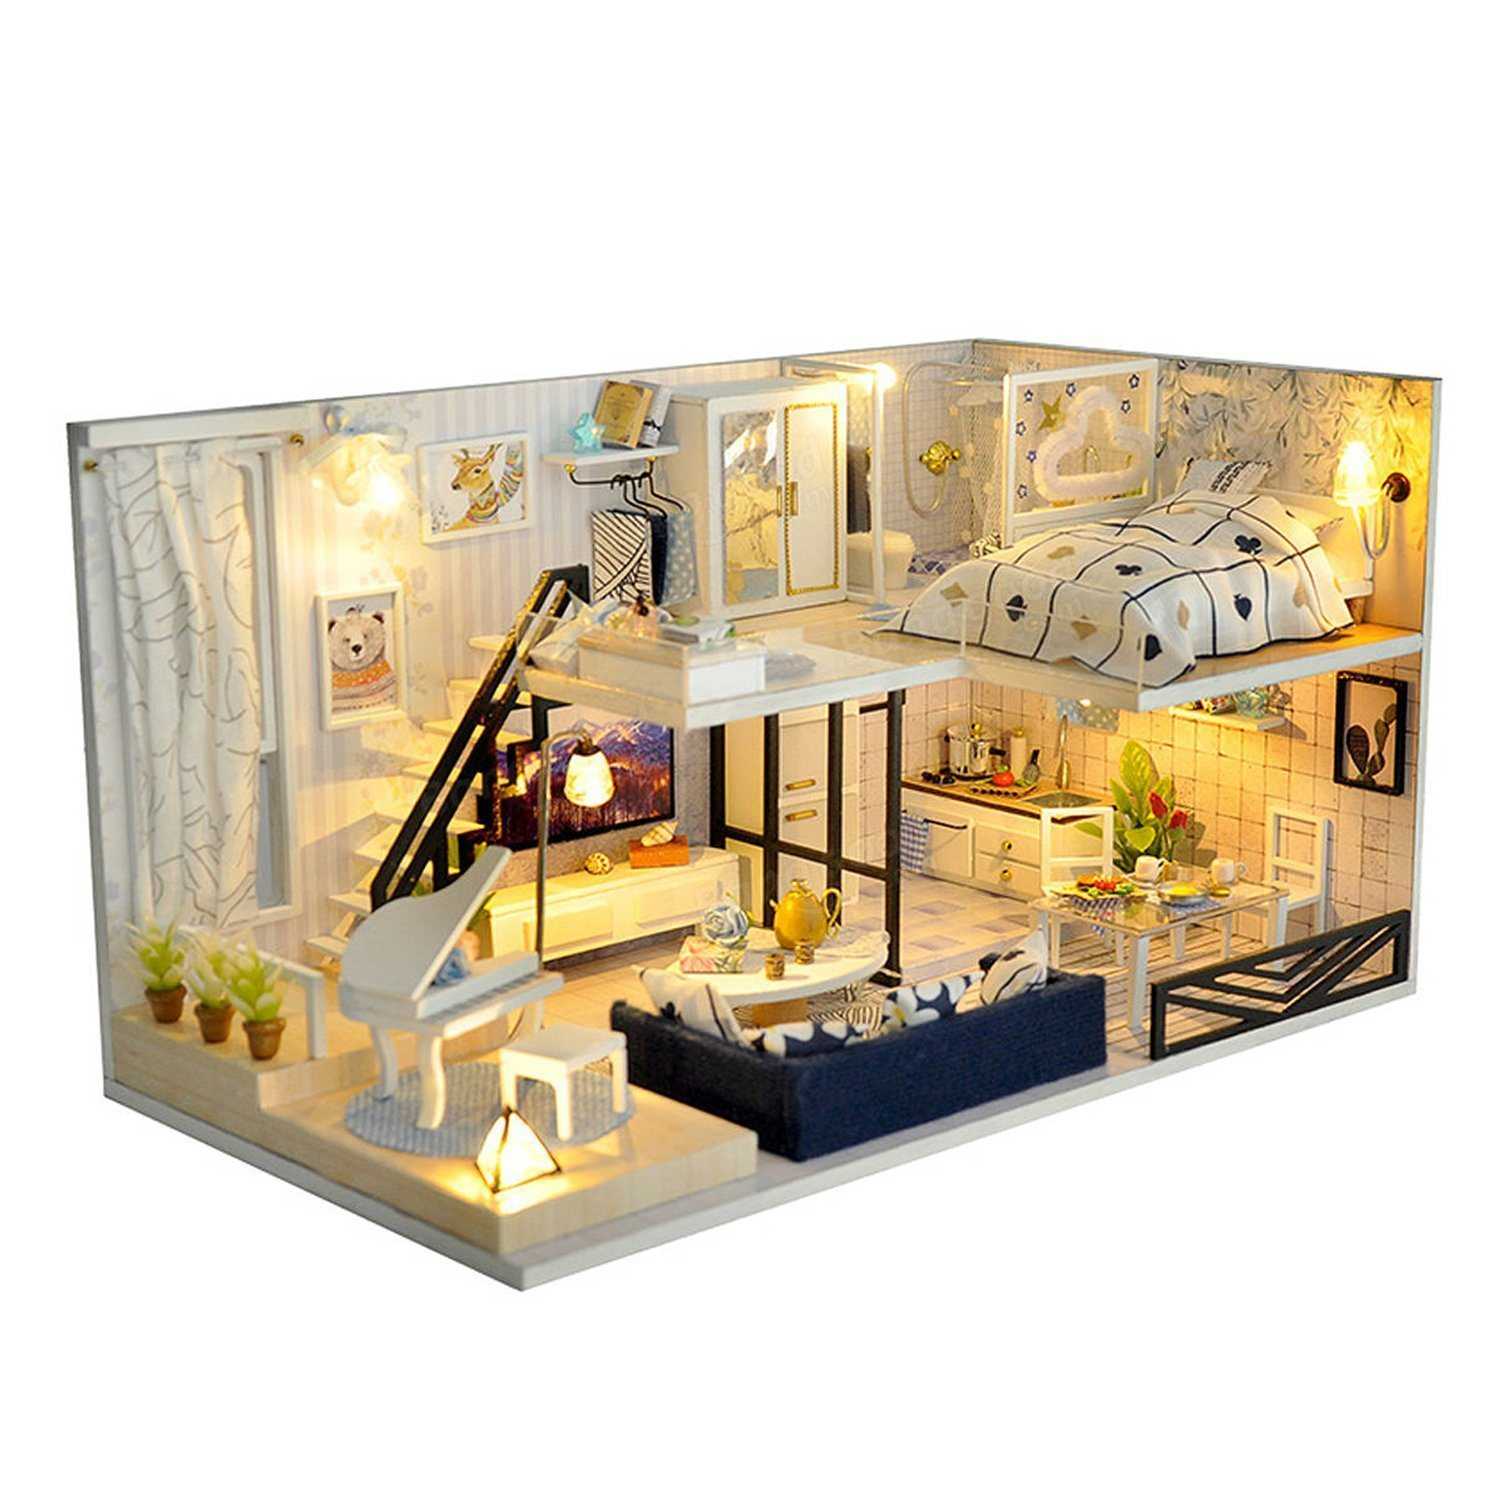 diy miniature dollhouse kit with led lights furniture dust proof 1 24 scale stem building toys mini doll house great gift for everyone of all ages